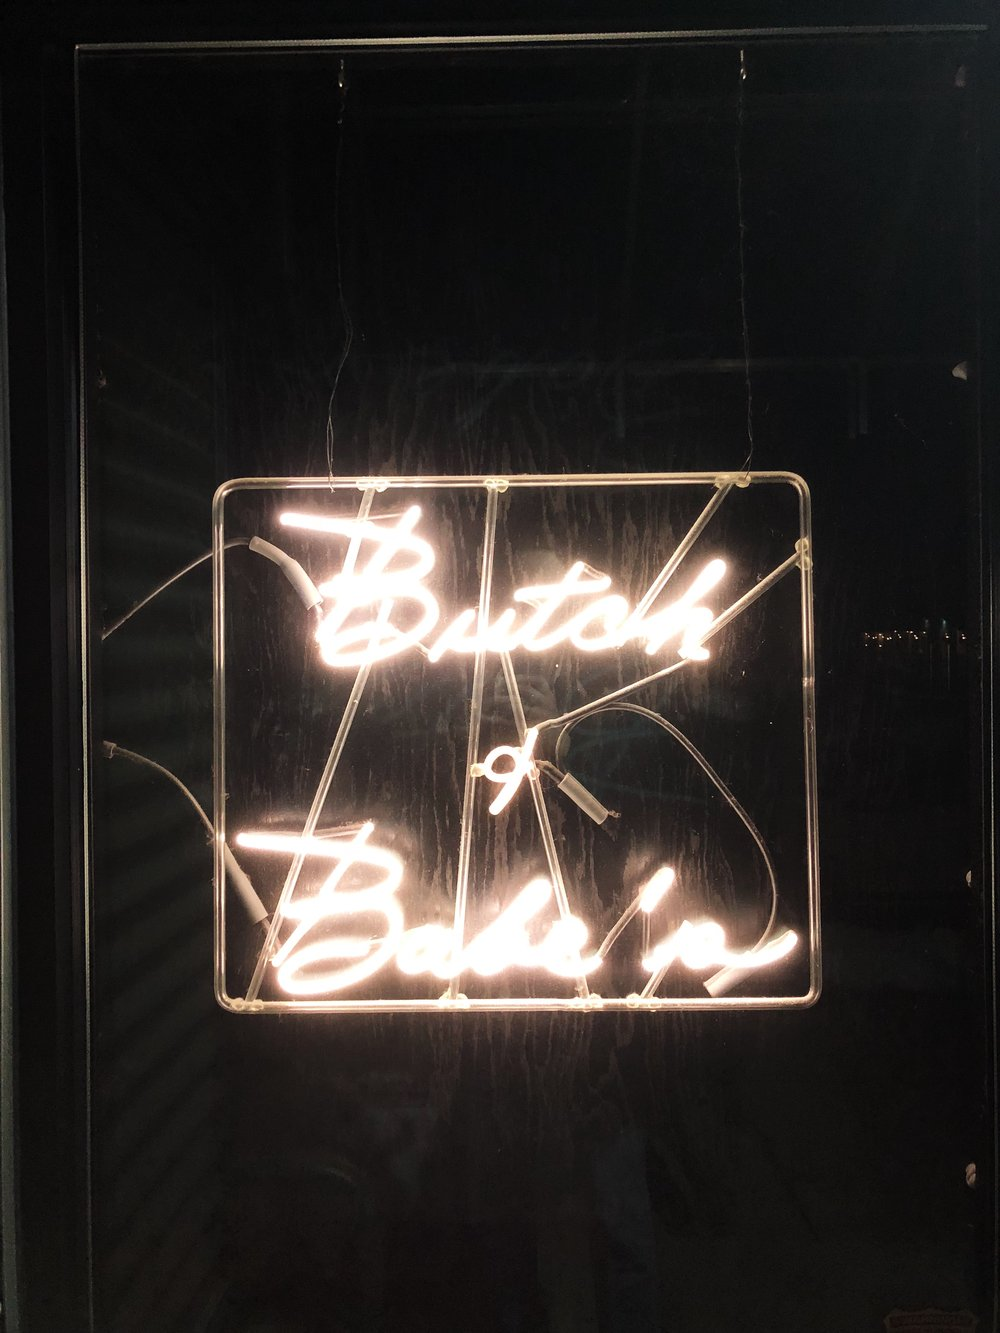 I mean, it's a neon sign, fine, but I thought it was chic.